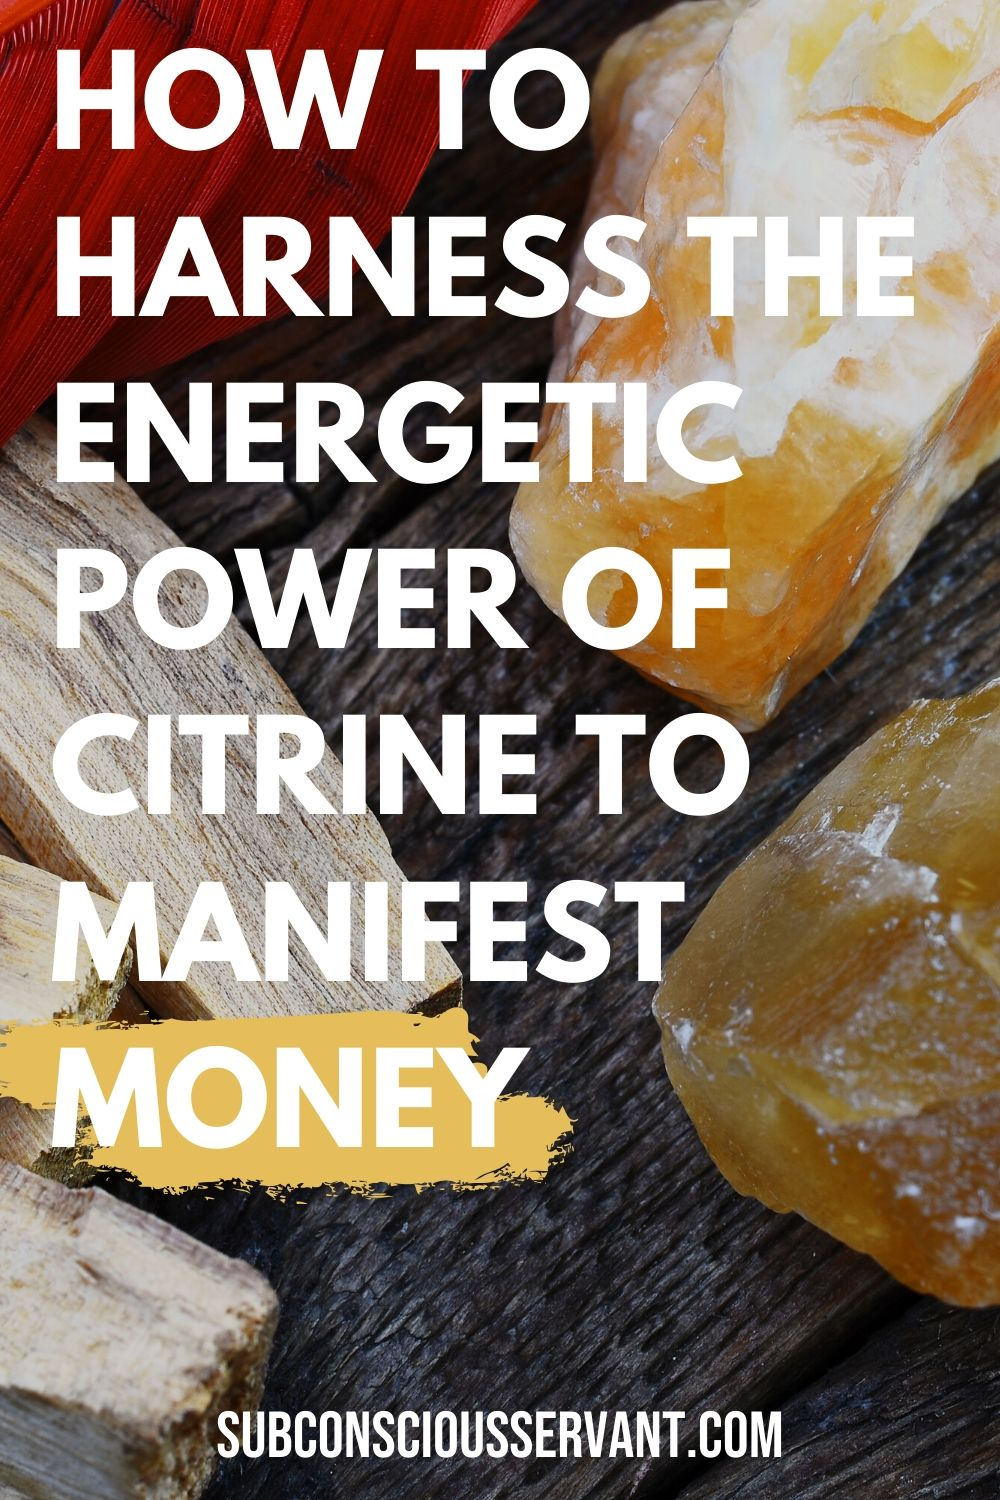 How To Use Citrine To Attract Money - 6 Key Methods